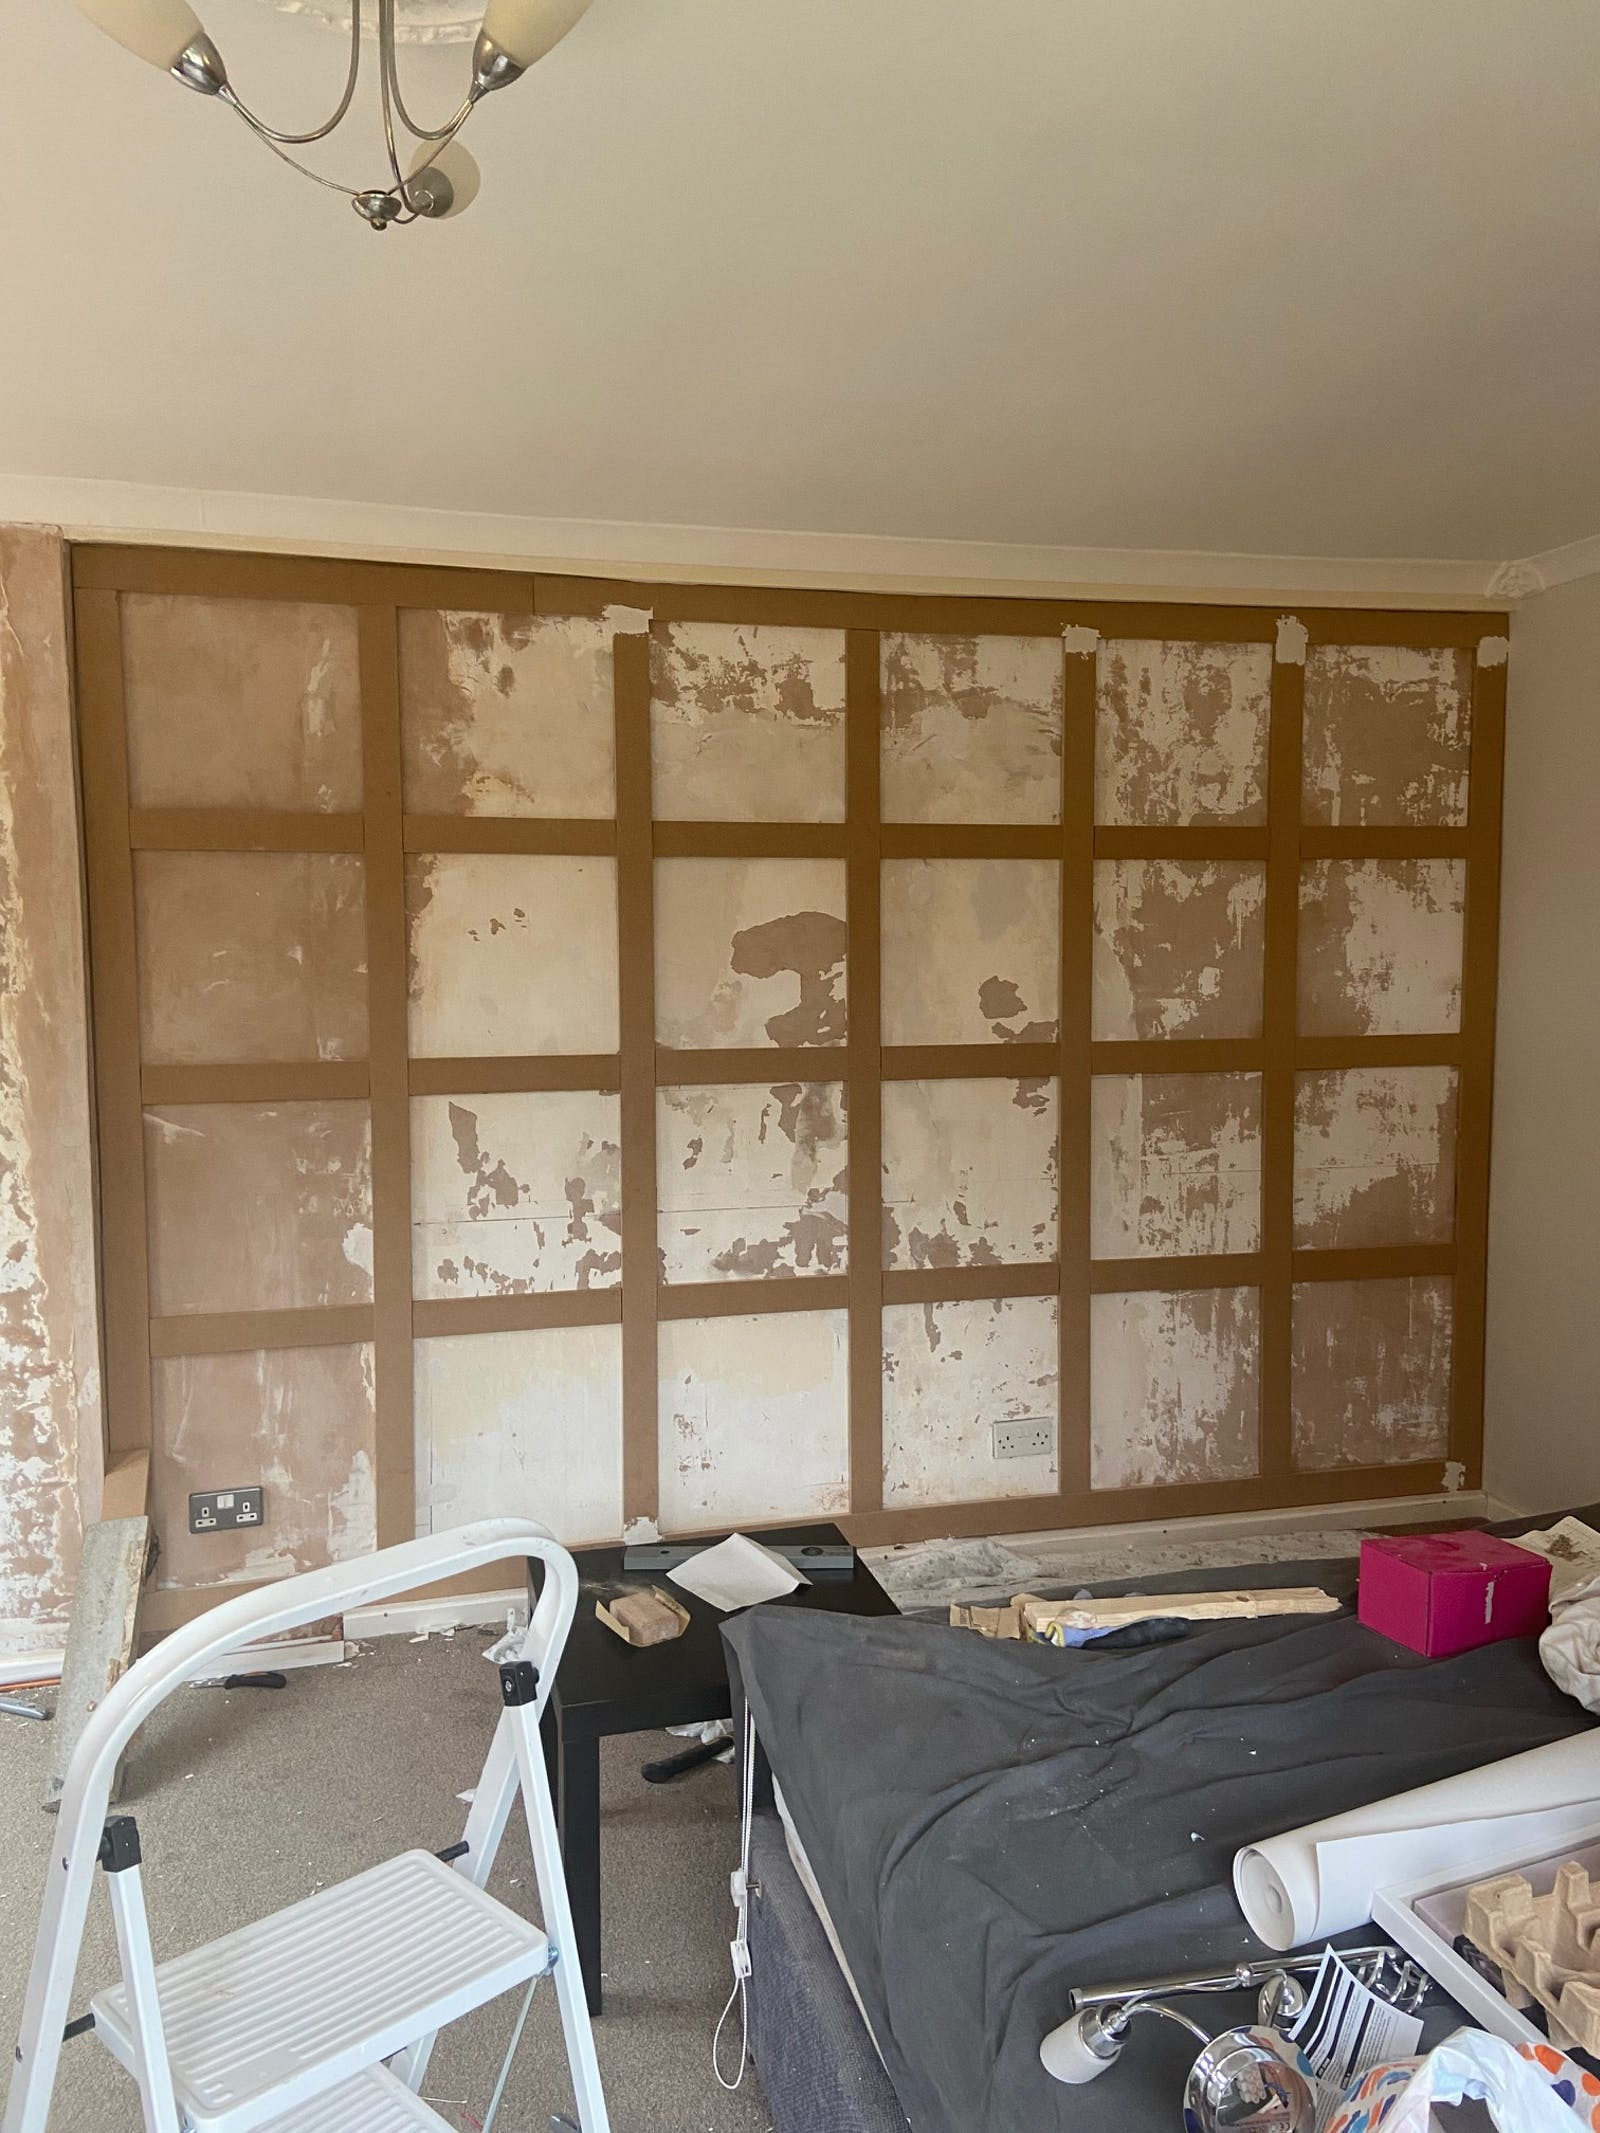 DAOB Before picture of room with peeling plaster and decorating equipment